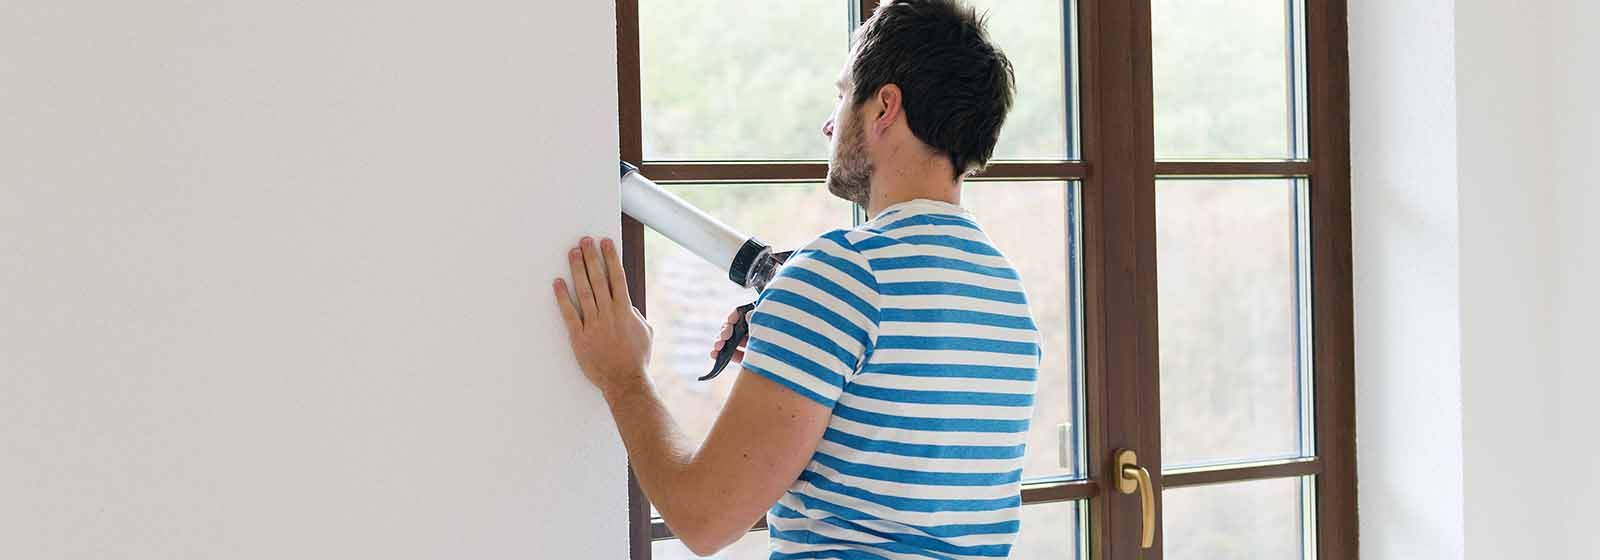 These DIY videos can help you be more energy efficient and save